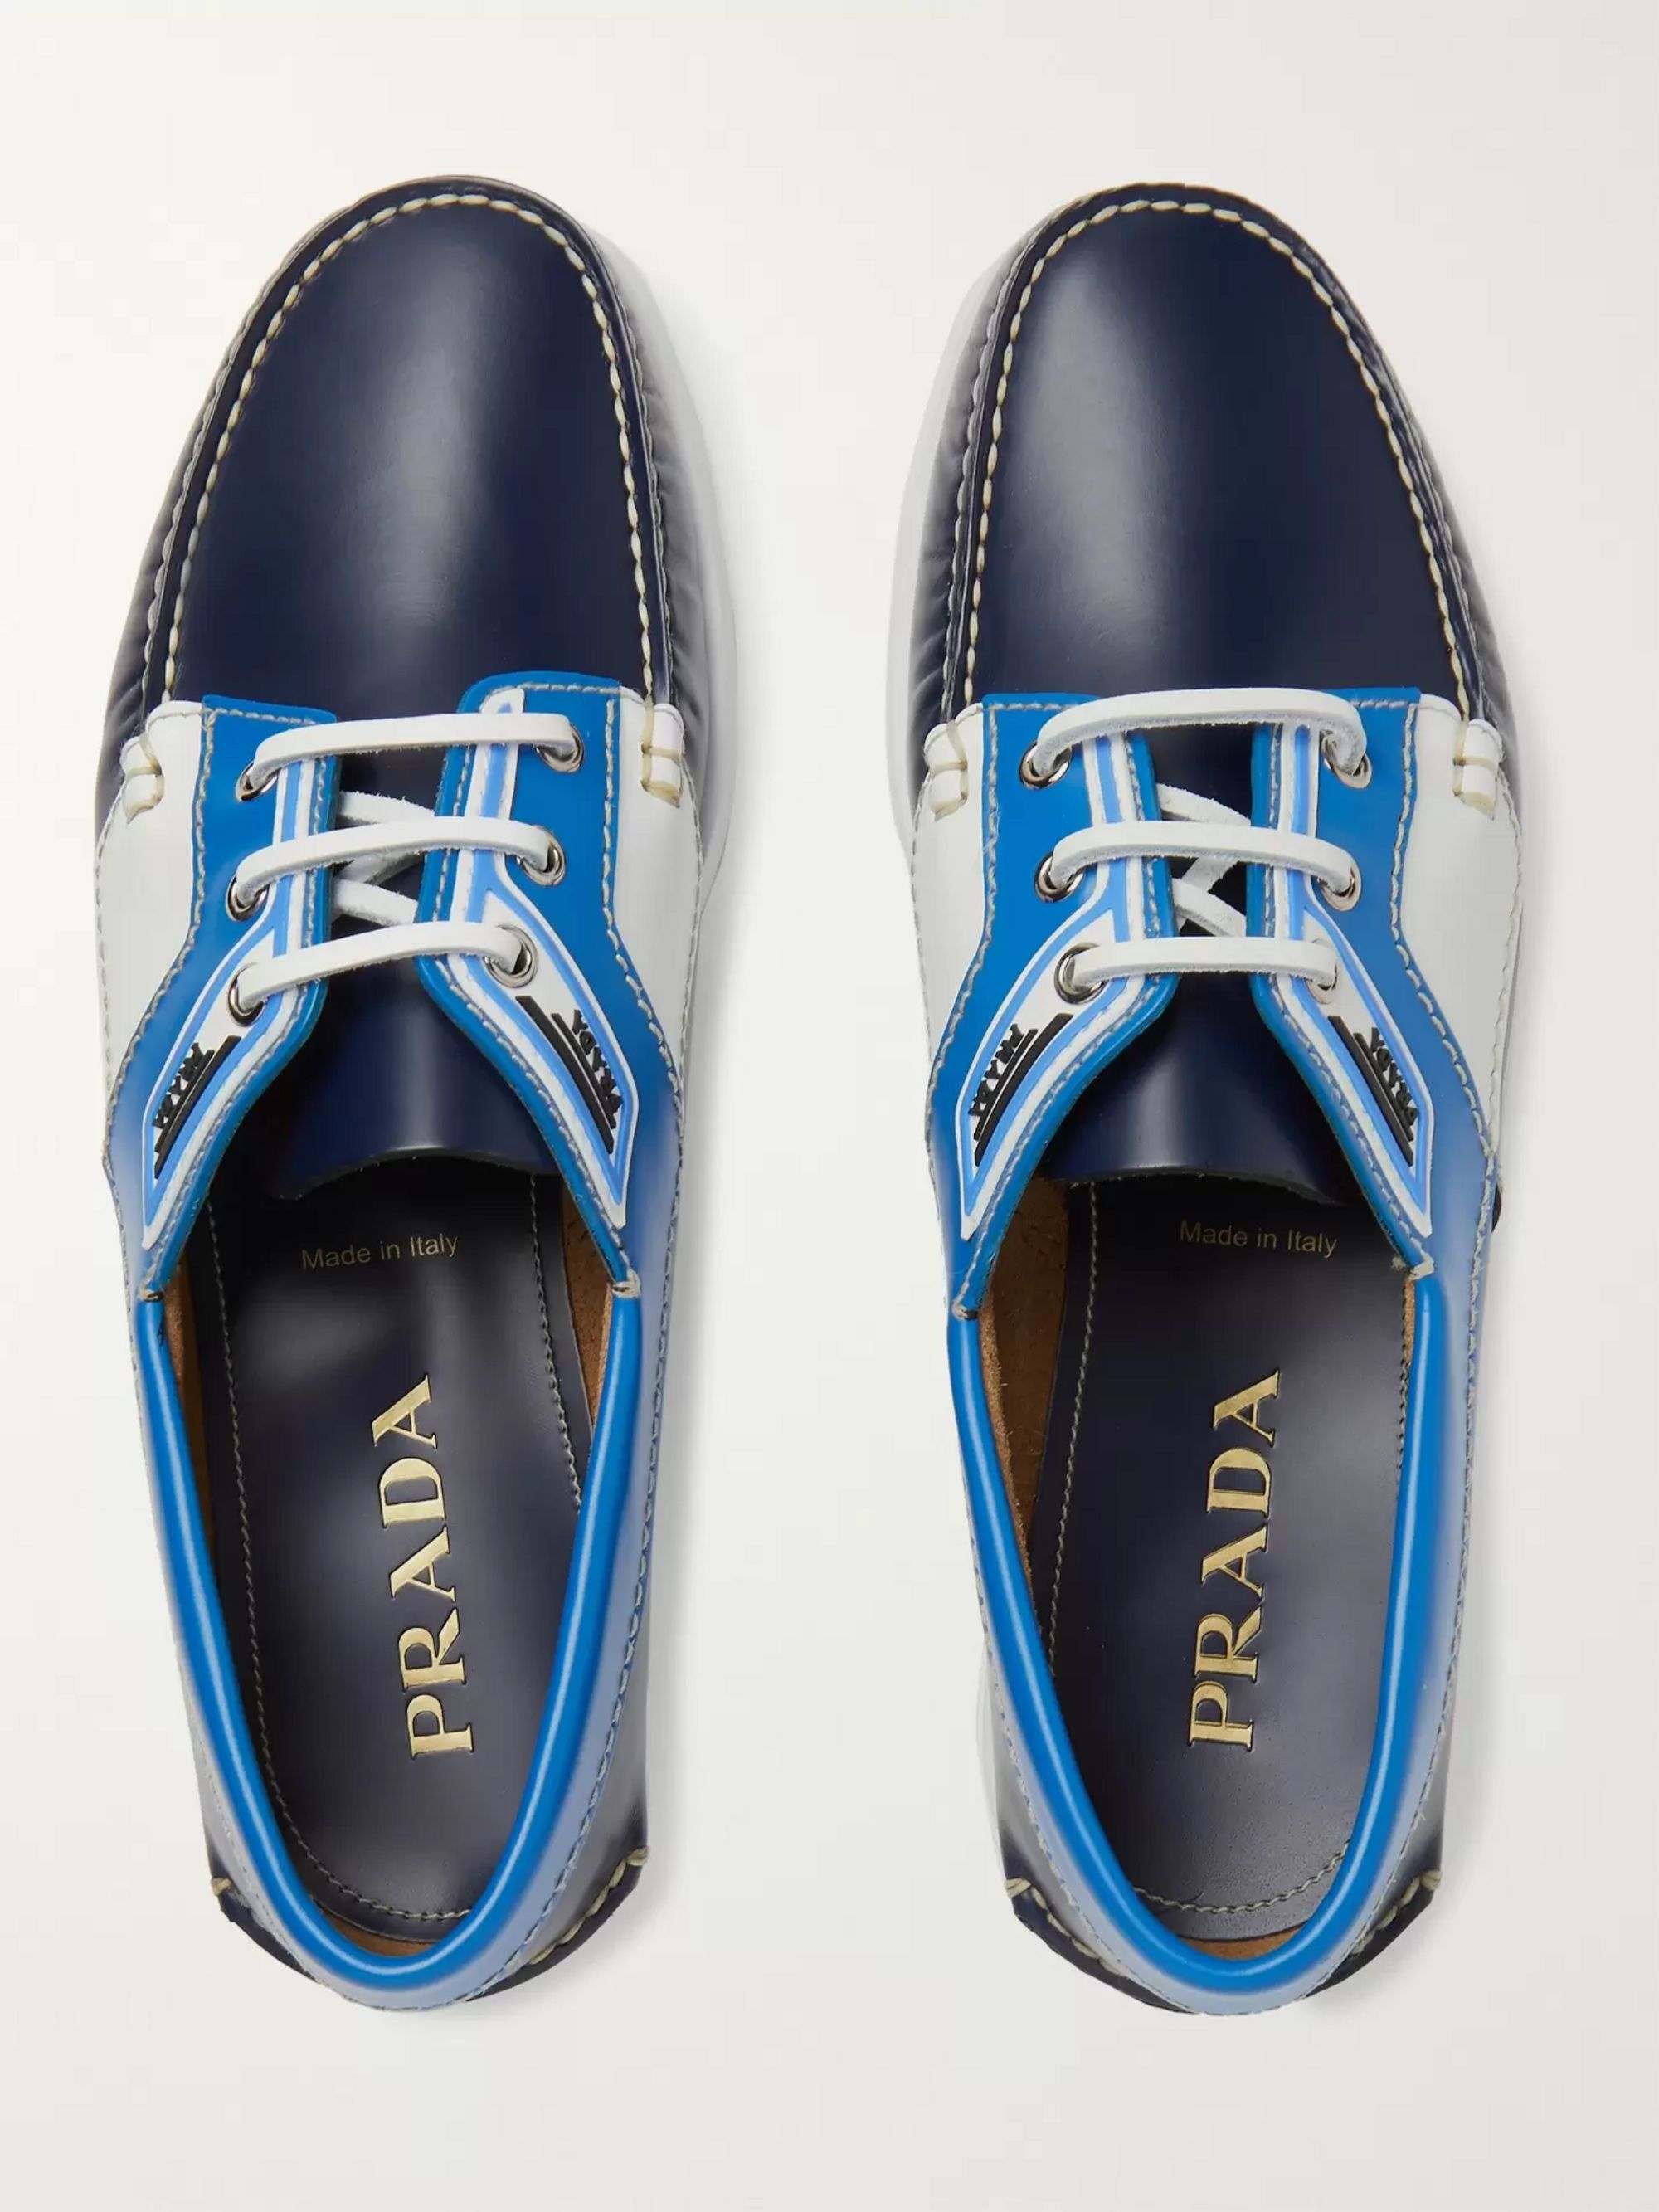 Prada Colour-Block Leather Boat Shoes